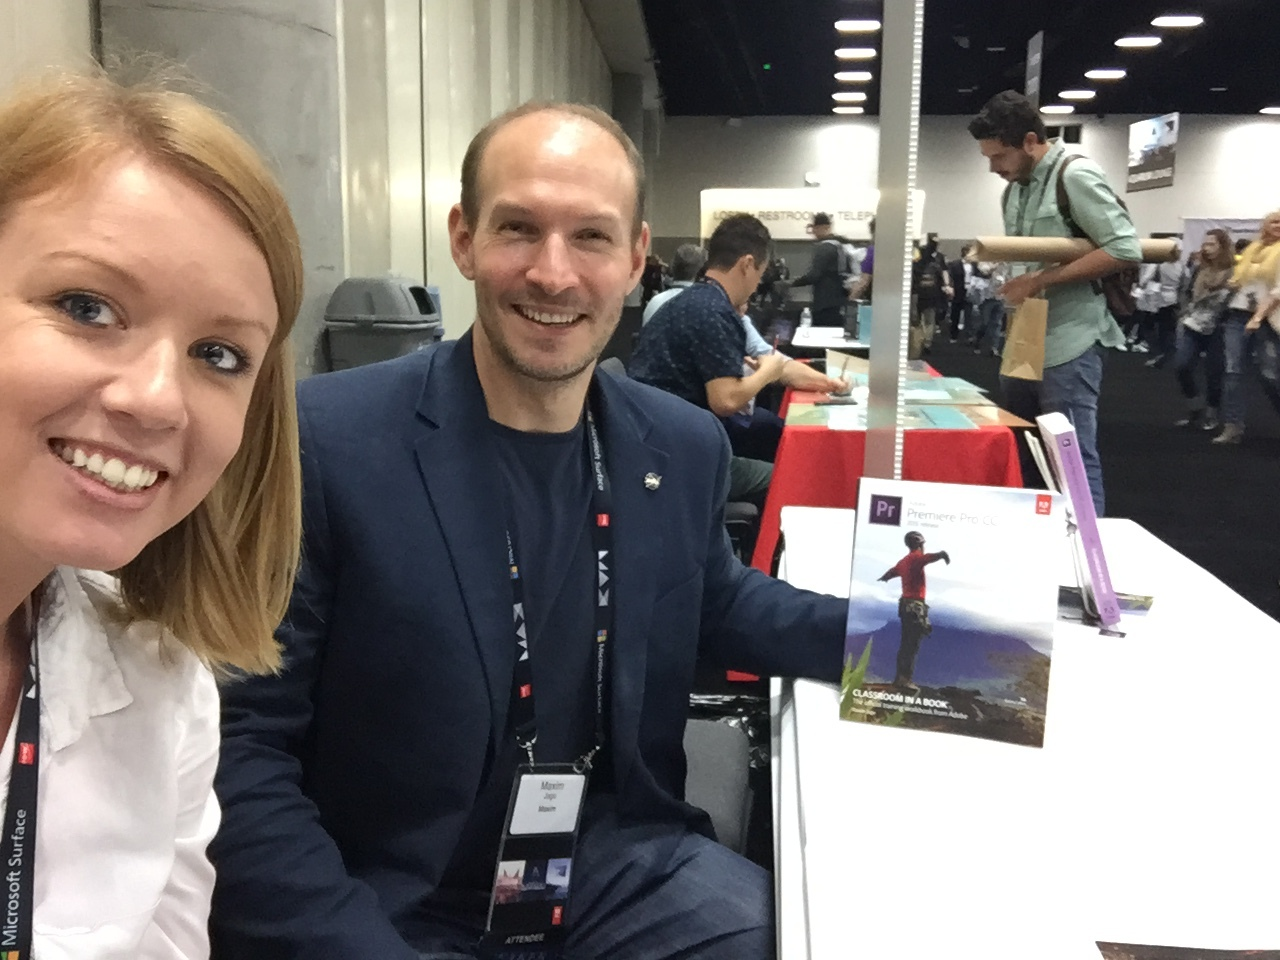 Premiere Gal and Maxim Jago at his Premiere Pro book signing in the #AdobeMax Exhibit hall.